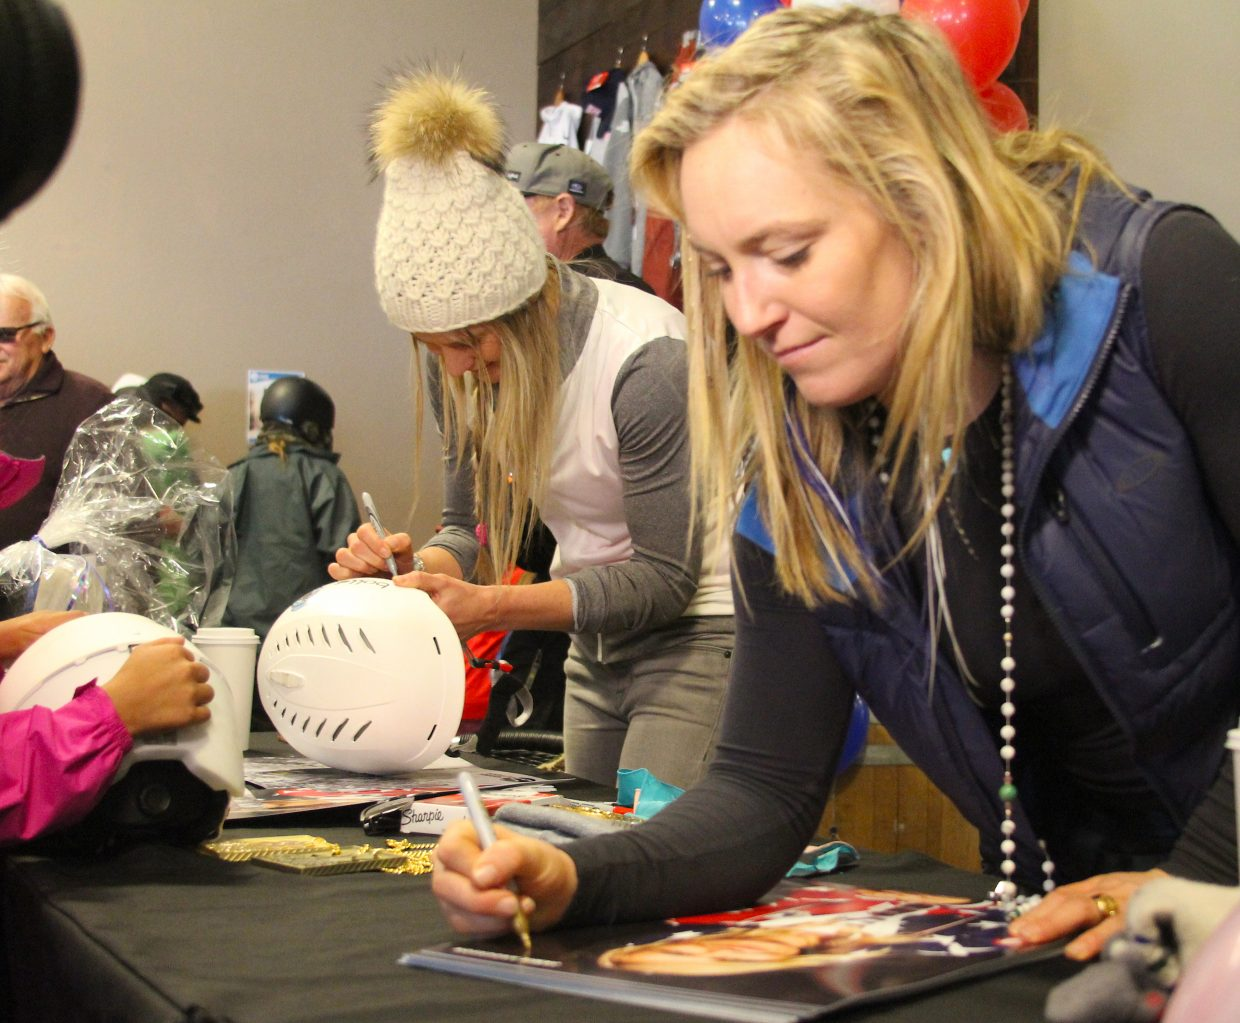 Hannah Teter (left) and Jamie Anderson signed autographs for about an hour Saturday, April 7, at Sierra-at-Tahoe.